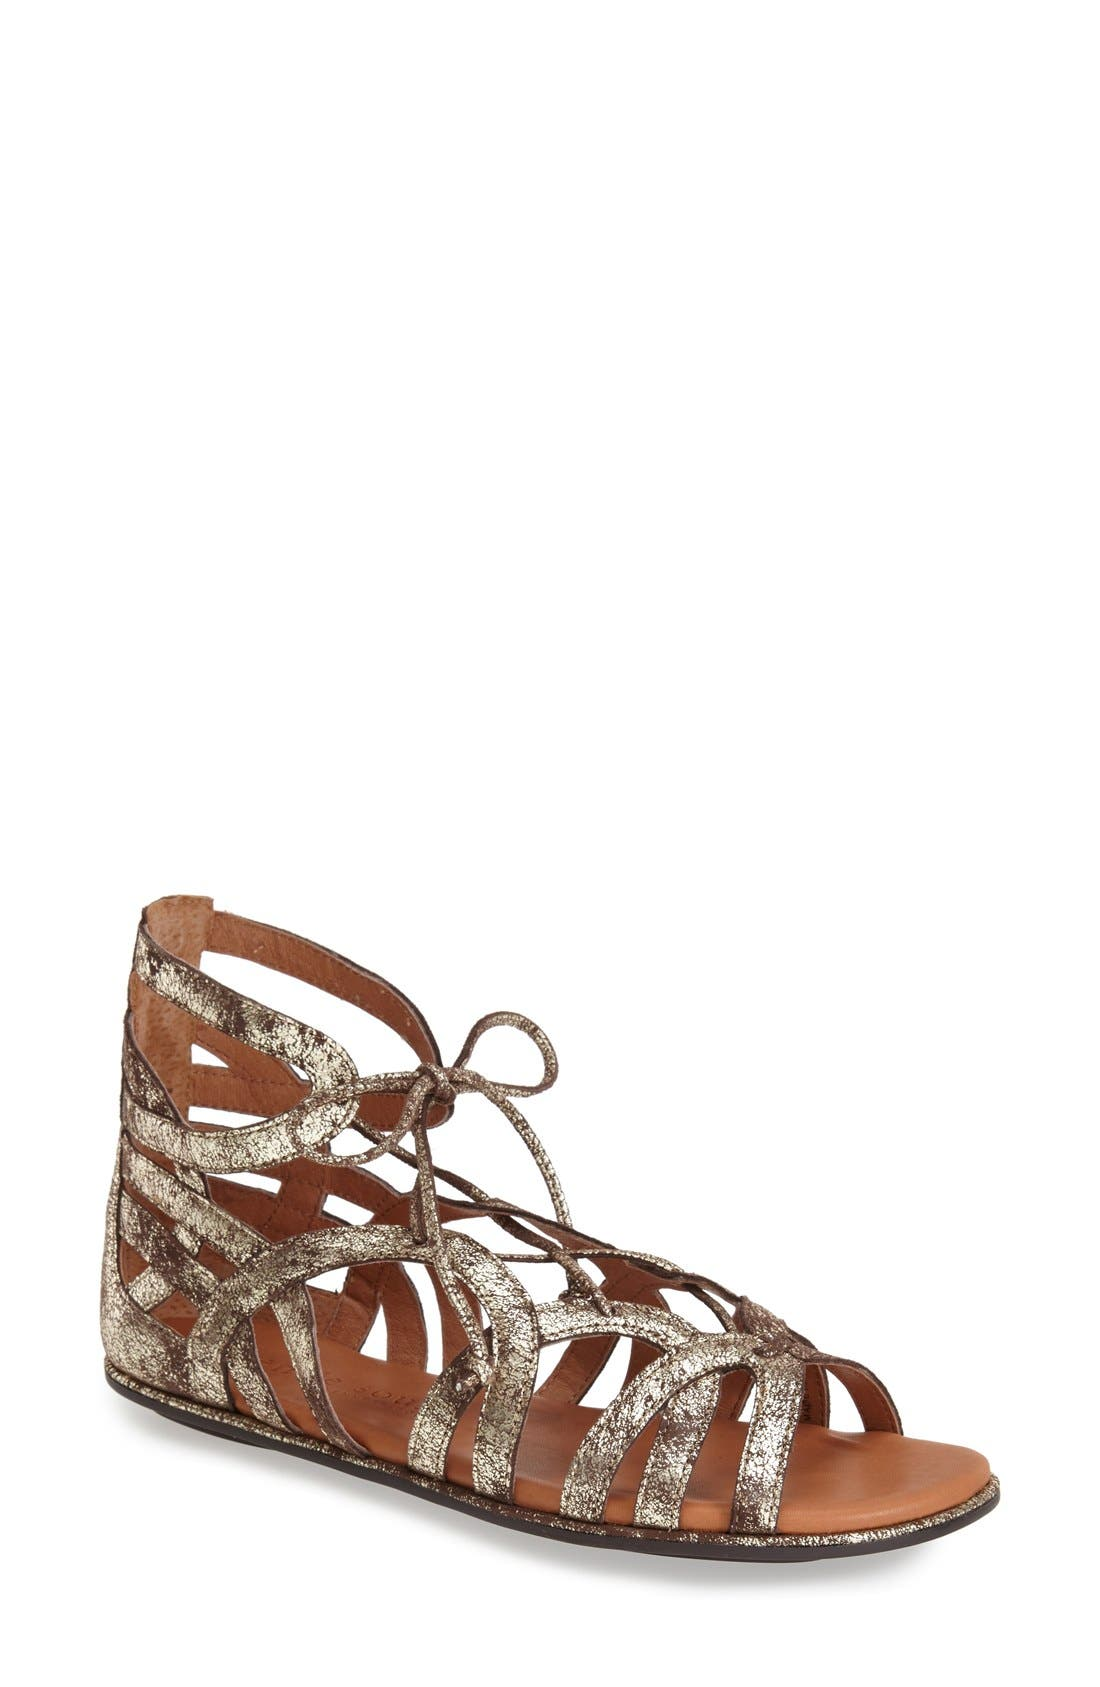 GENTLE SOULS BY KENNETH COLE,                             'Break My Heart 3' Cage Sandal,                             Main thumbnail 1, color,                             BROWN LEATHER